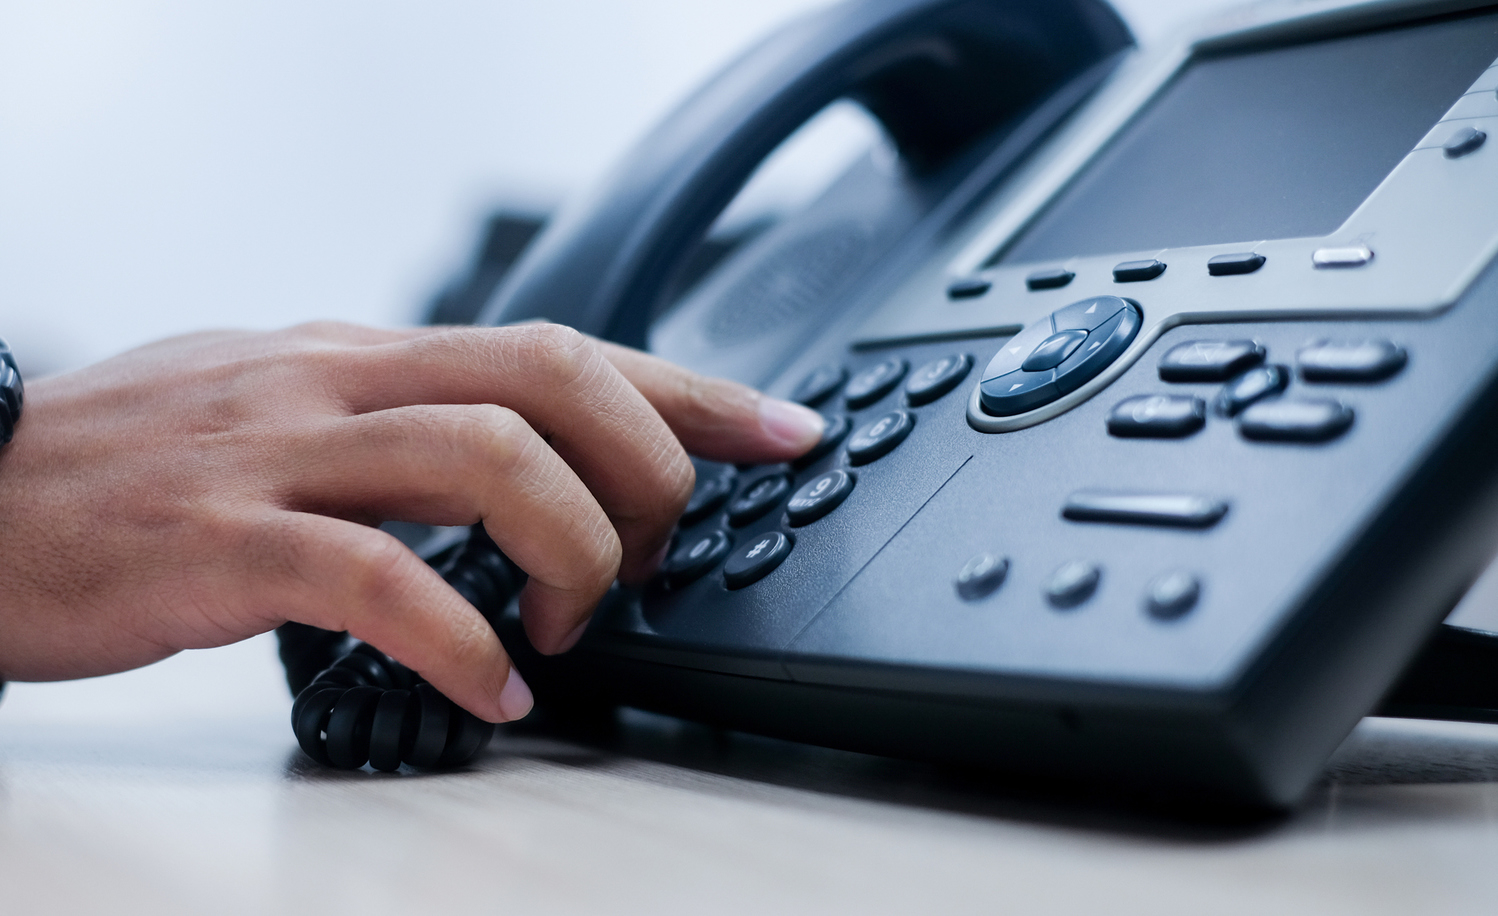 With The Virtual Phone System, The Best Sales Opportunities Are Now Available To You